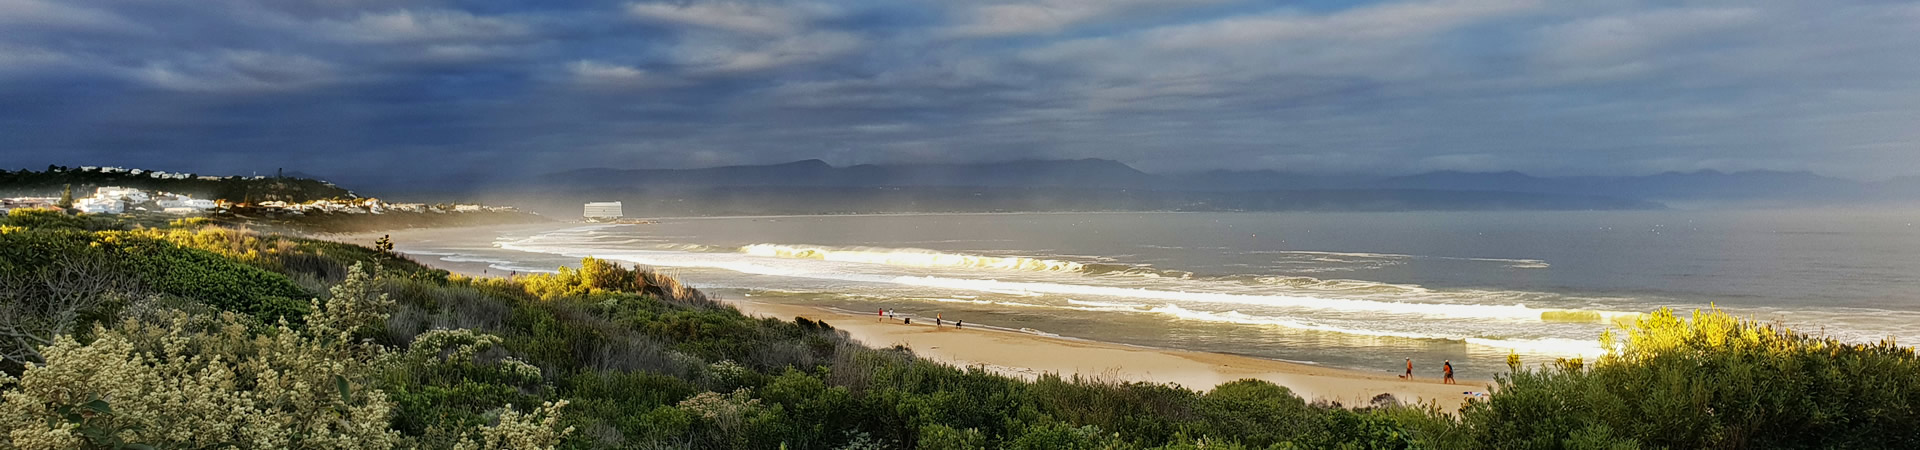 View of Plett from the stairs on Solar Beach, Robberg Beach